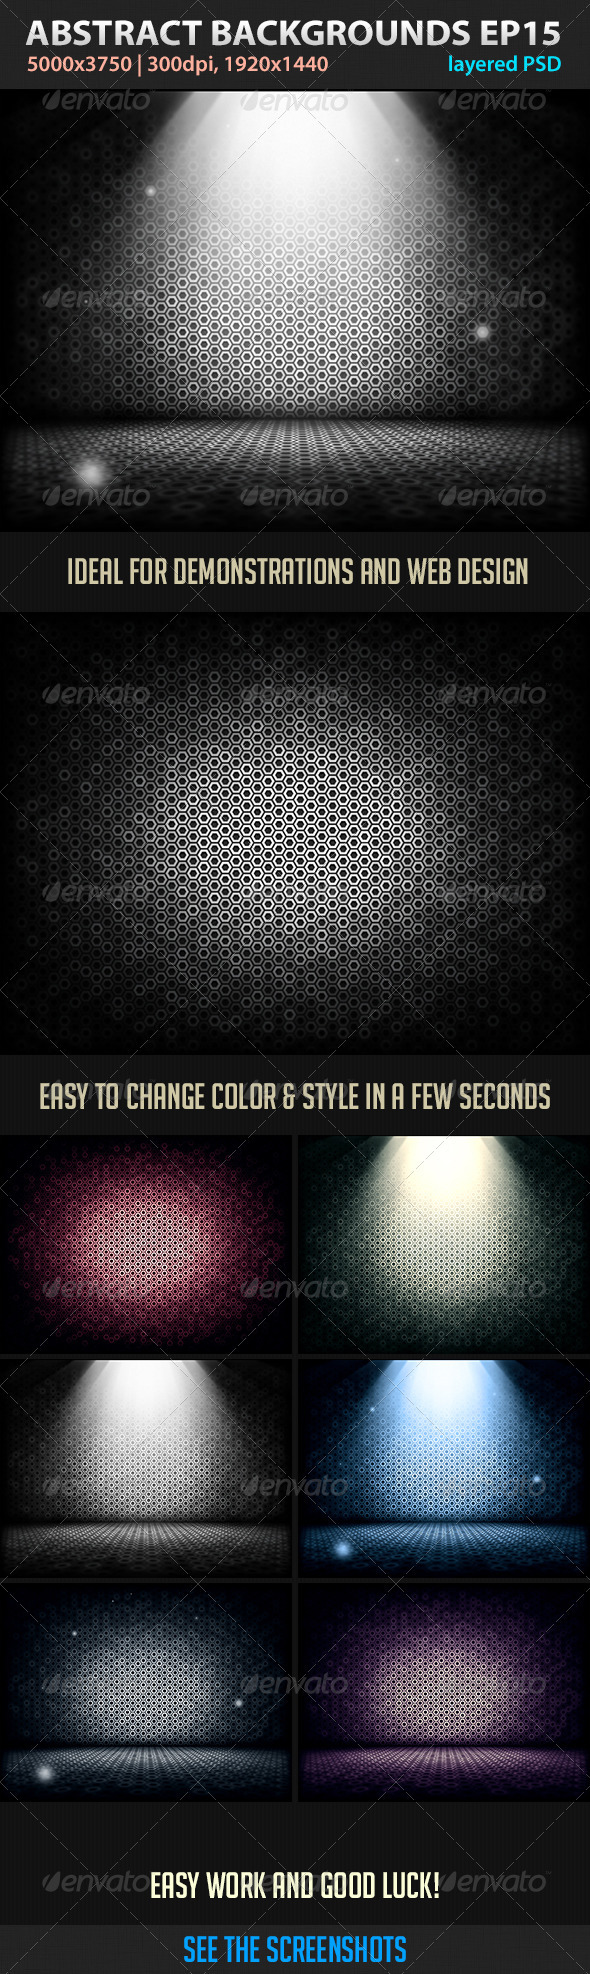 GraphicRiver Abstract Backgrounds Episode 15 3399141